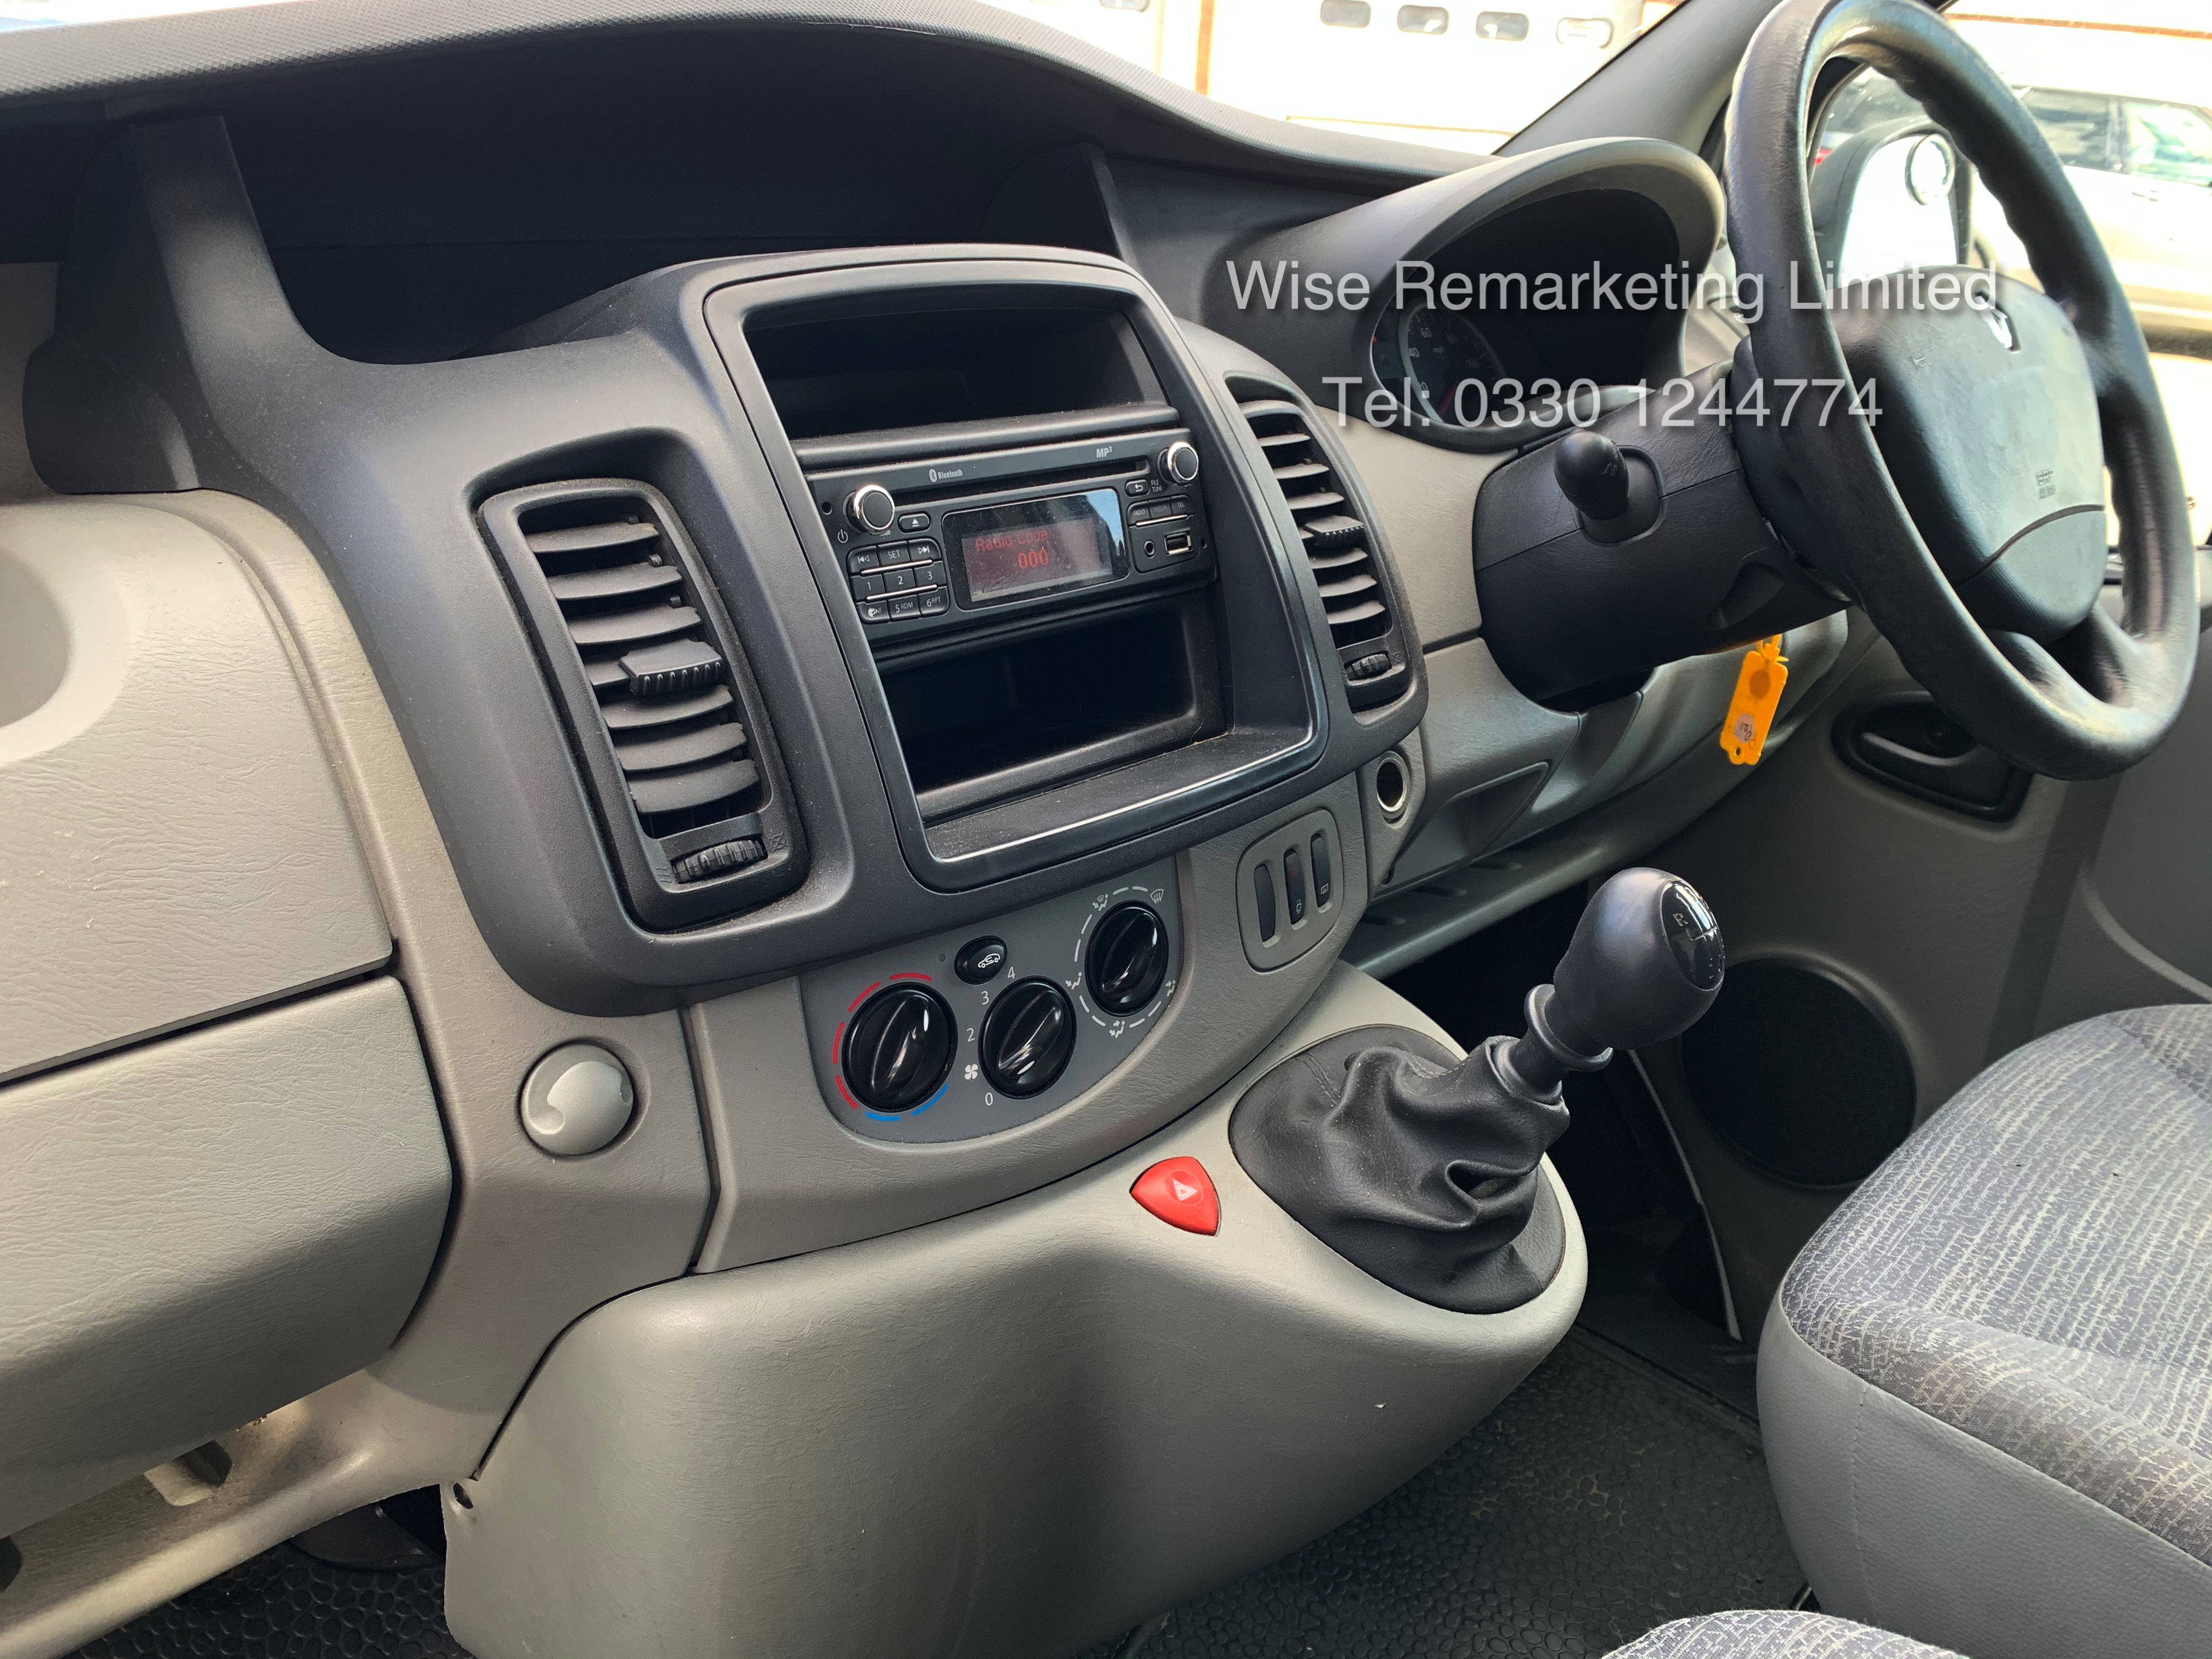 Renault Trafic 2.0 DCI (115 BHP) - 6 Speed - 2014 Reg - Ply Lined - - Image 15 of 21